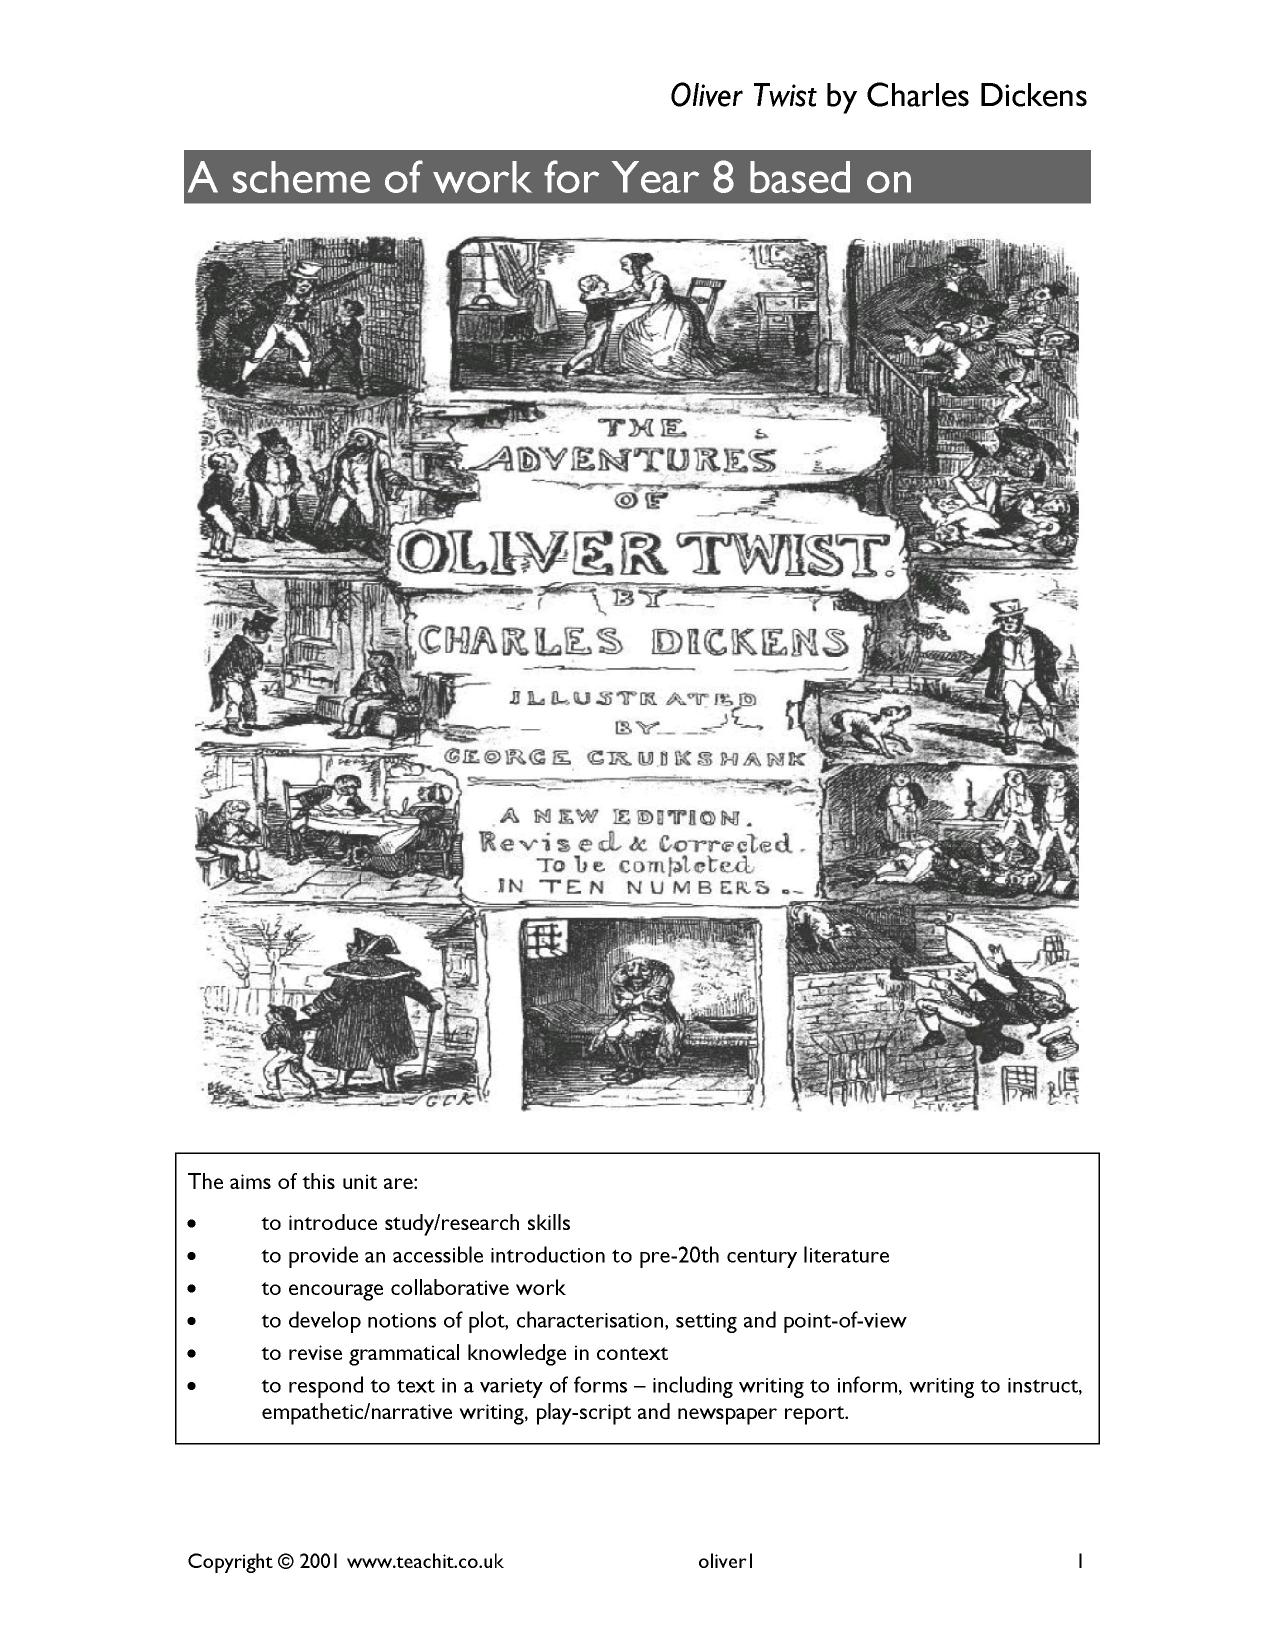 advantages of the oliver twist resource as a teaching design Resources resources home early years / pre-k and kindergarten primary / elementary middle school secondary / high school whole school special educational needs tes teach blog store store home elements magazine community community home latest posts search forums education news teaching overseas us education news.